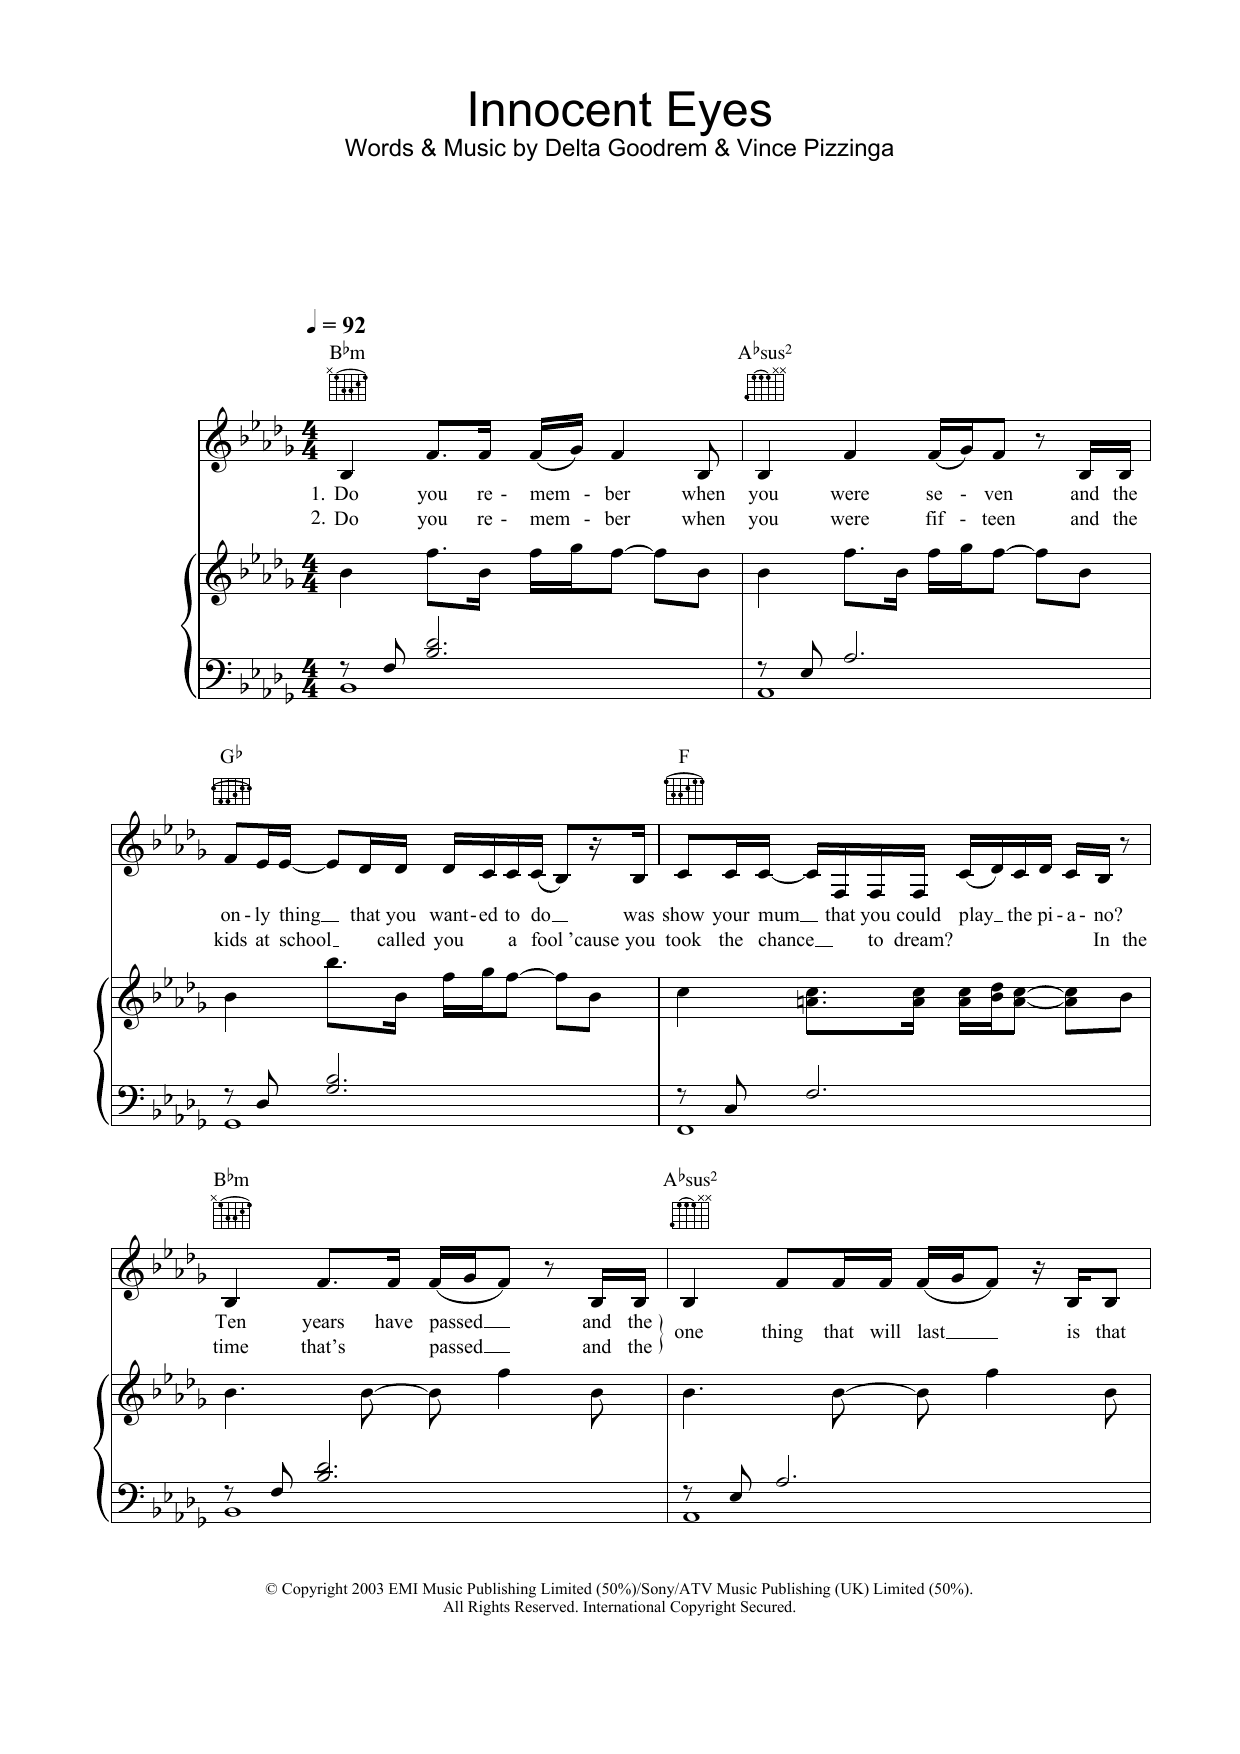 Innocent Eyes sheet music for voice, piano or guitar by Delta Goodrem